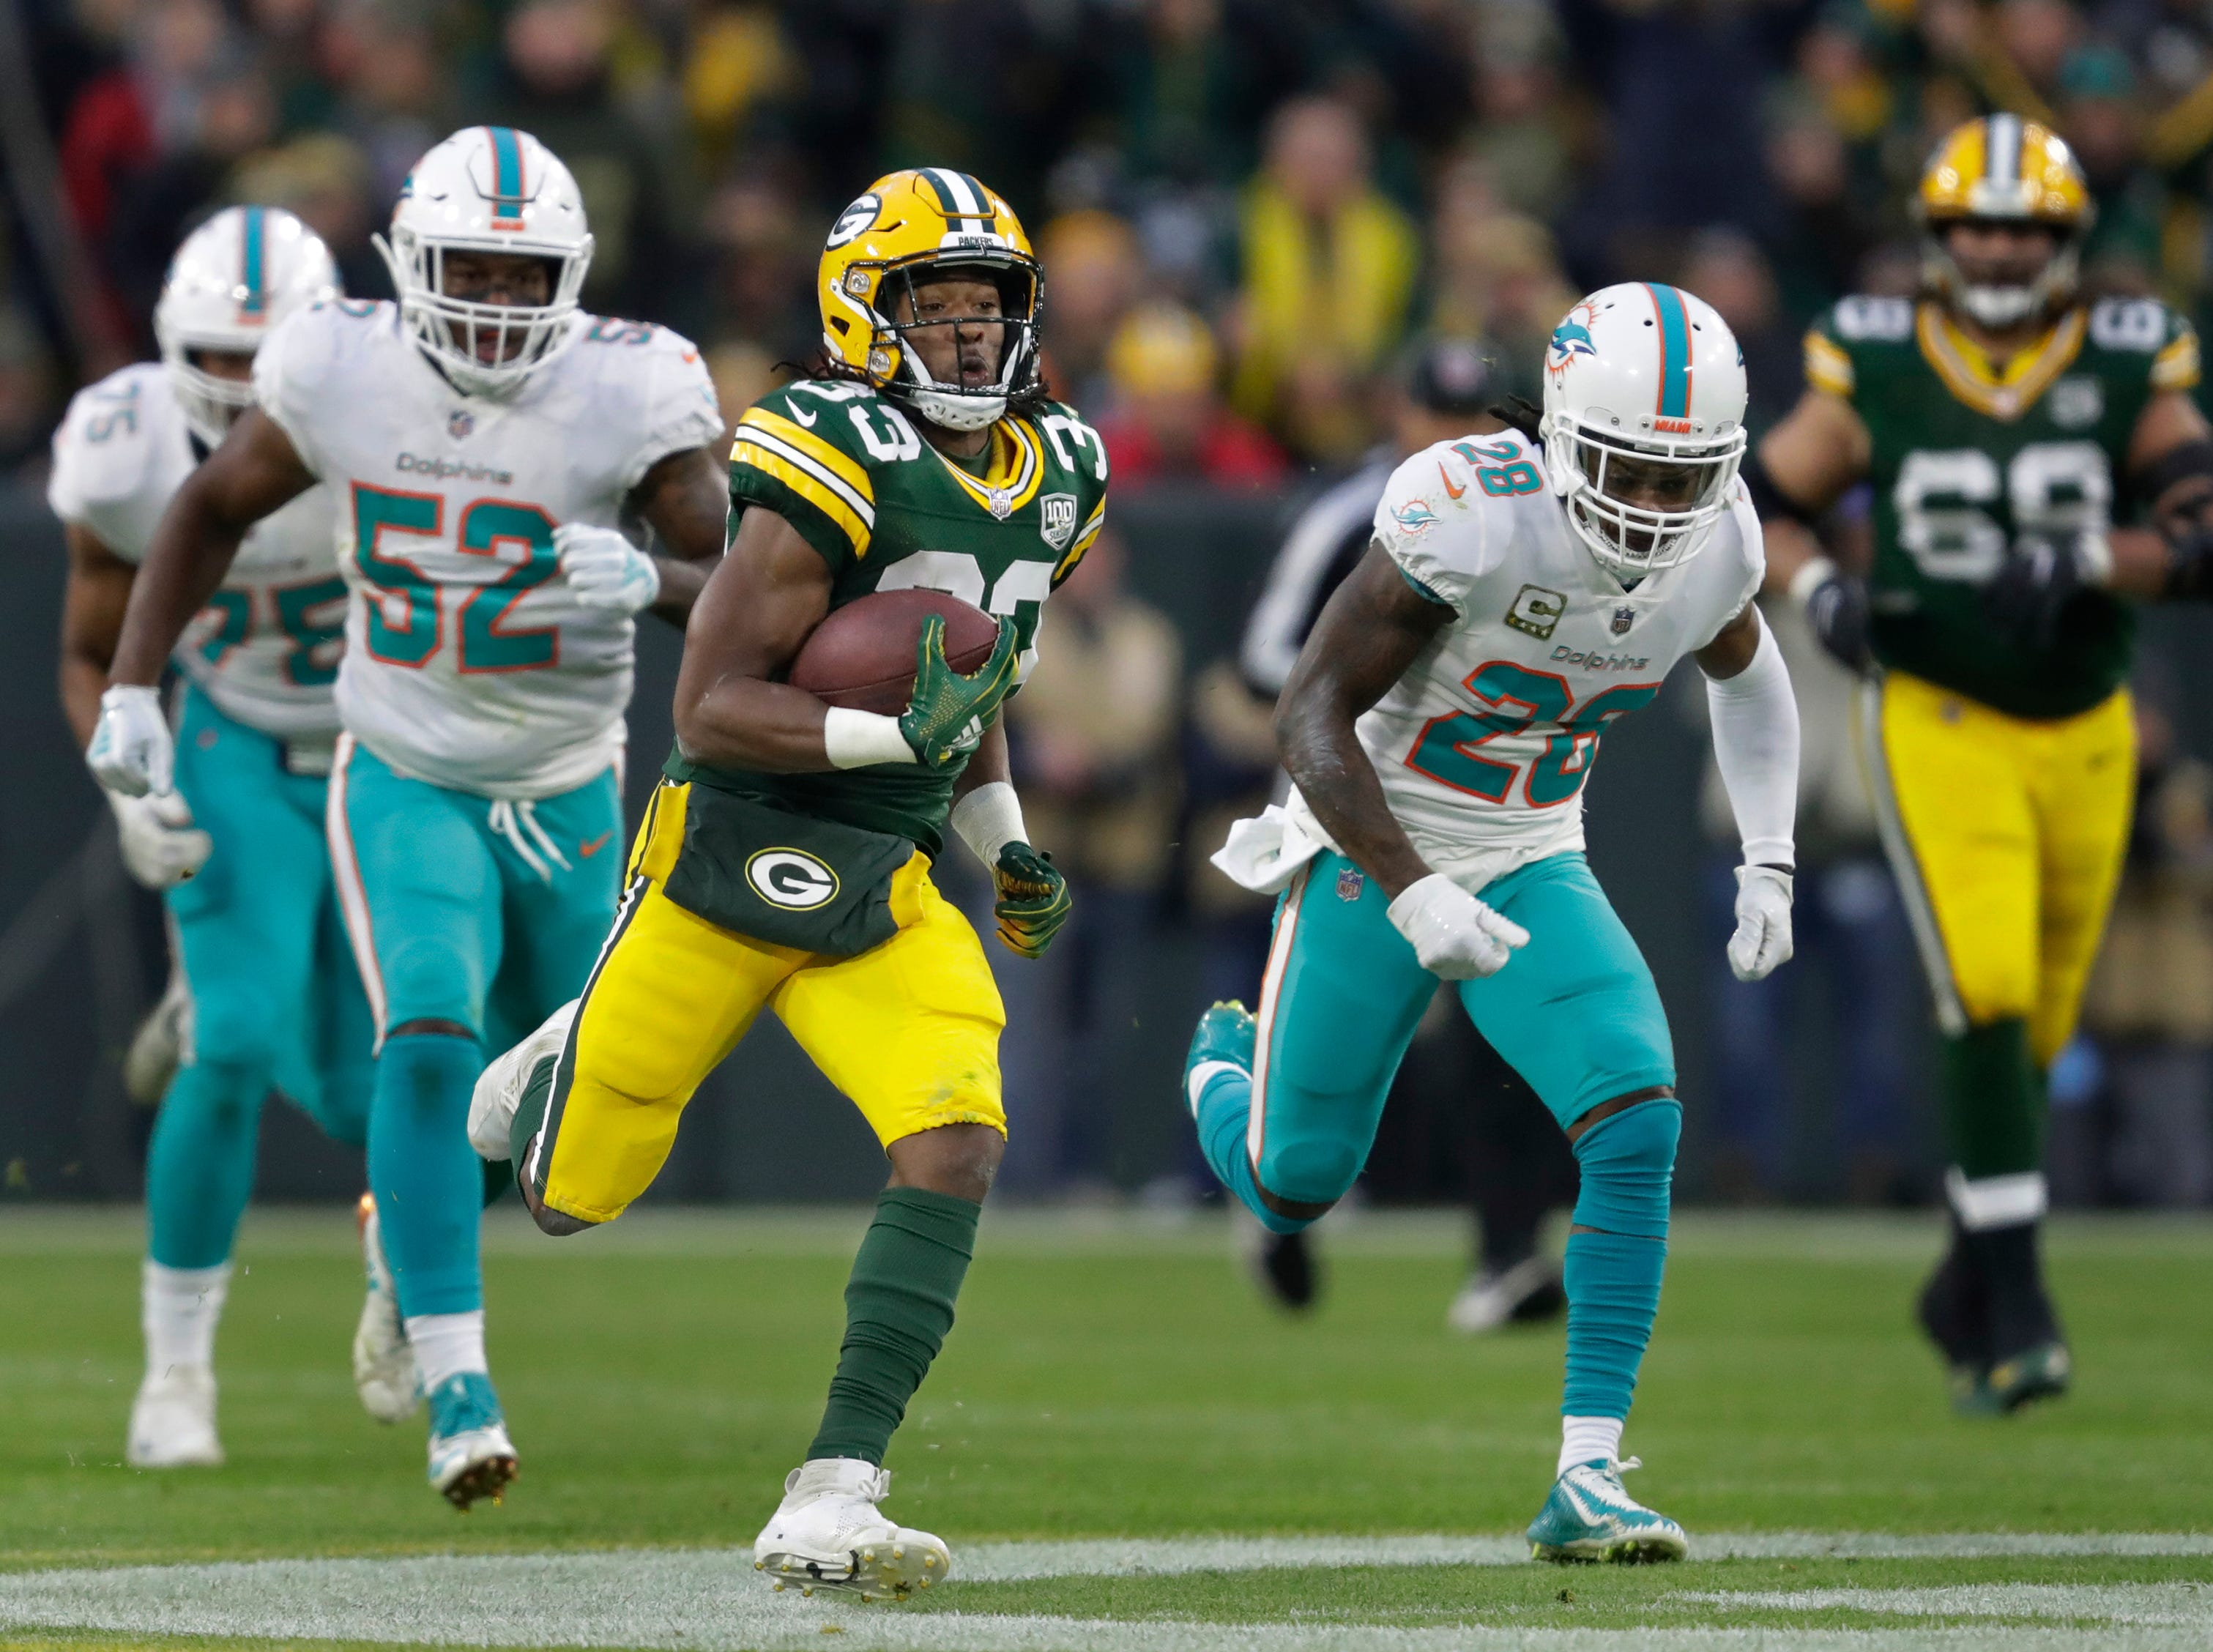 Green Bay Packers running back Aaron Jones (33) breaks away for a 67-yard run against Miami in the first quarter Sunday, November 11, 2018, Lambeau Field in Green Bay, Wis. 